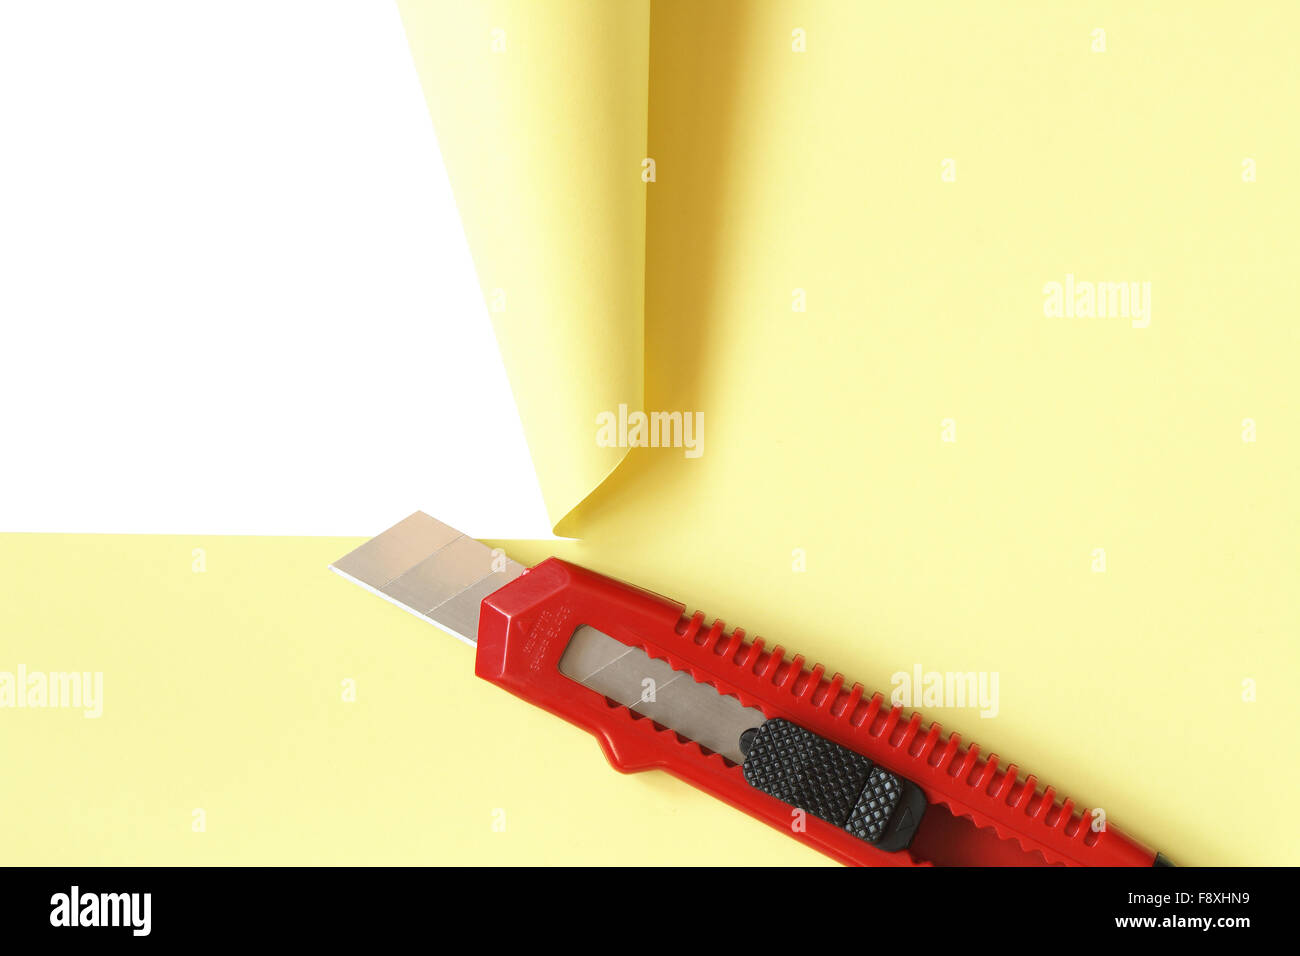 Paper And Knife - Stock Image